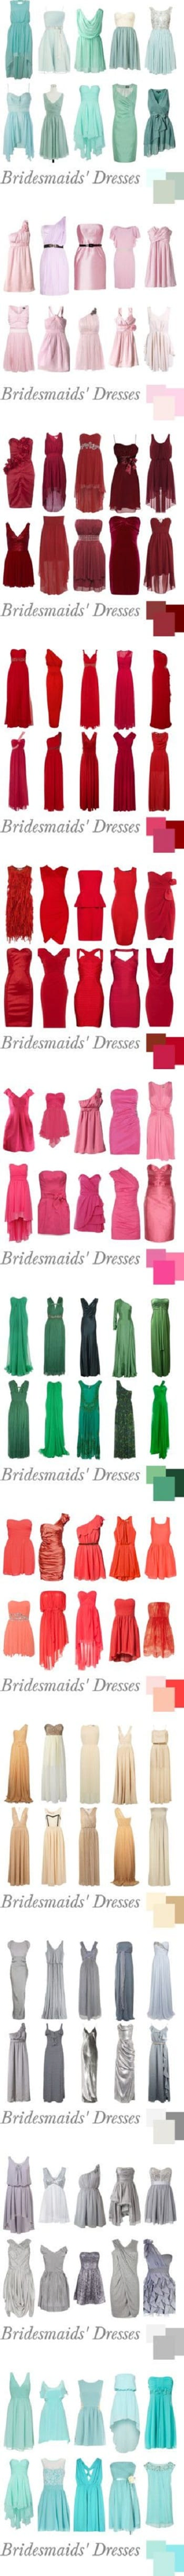 bridesmaids dresses in style and color